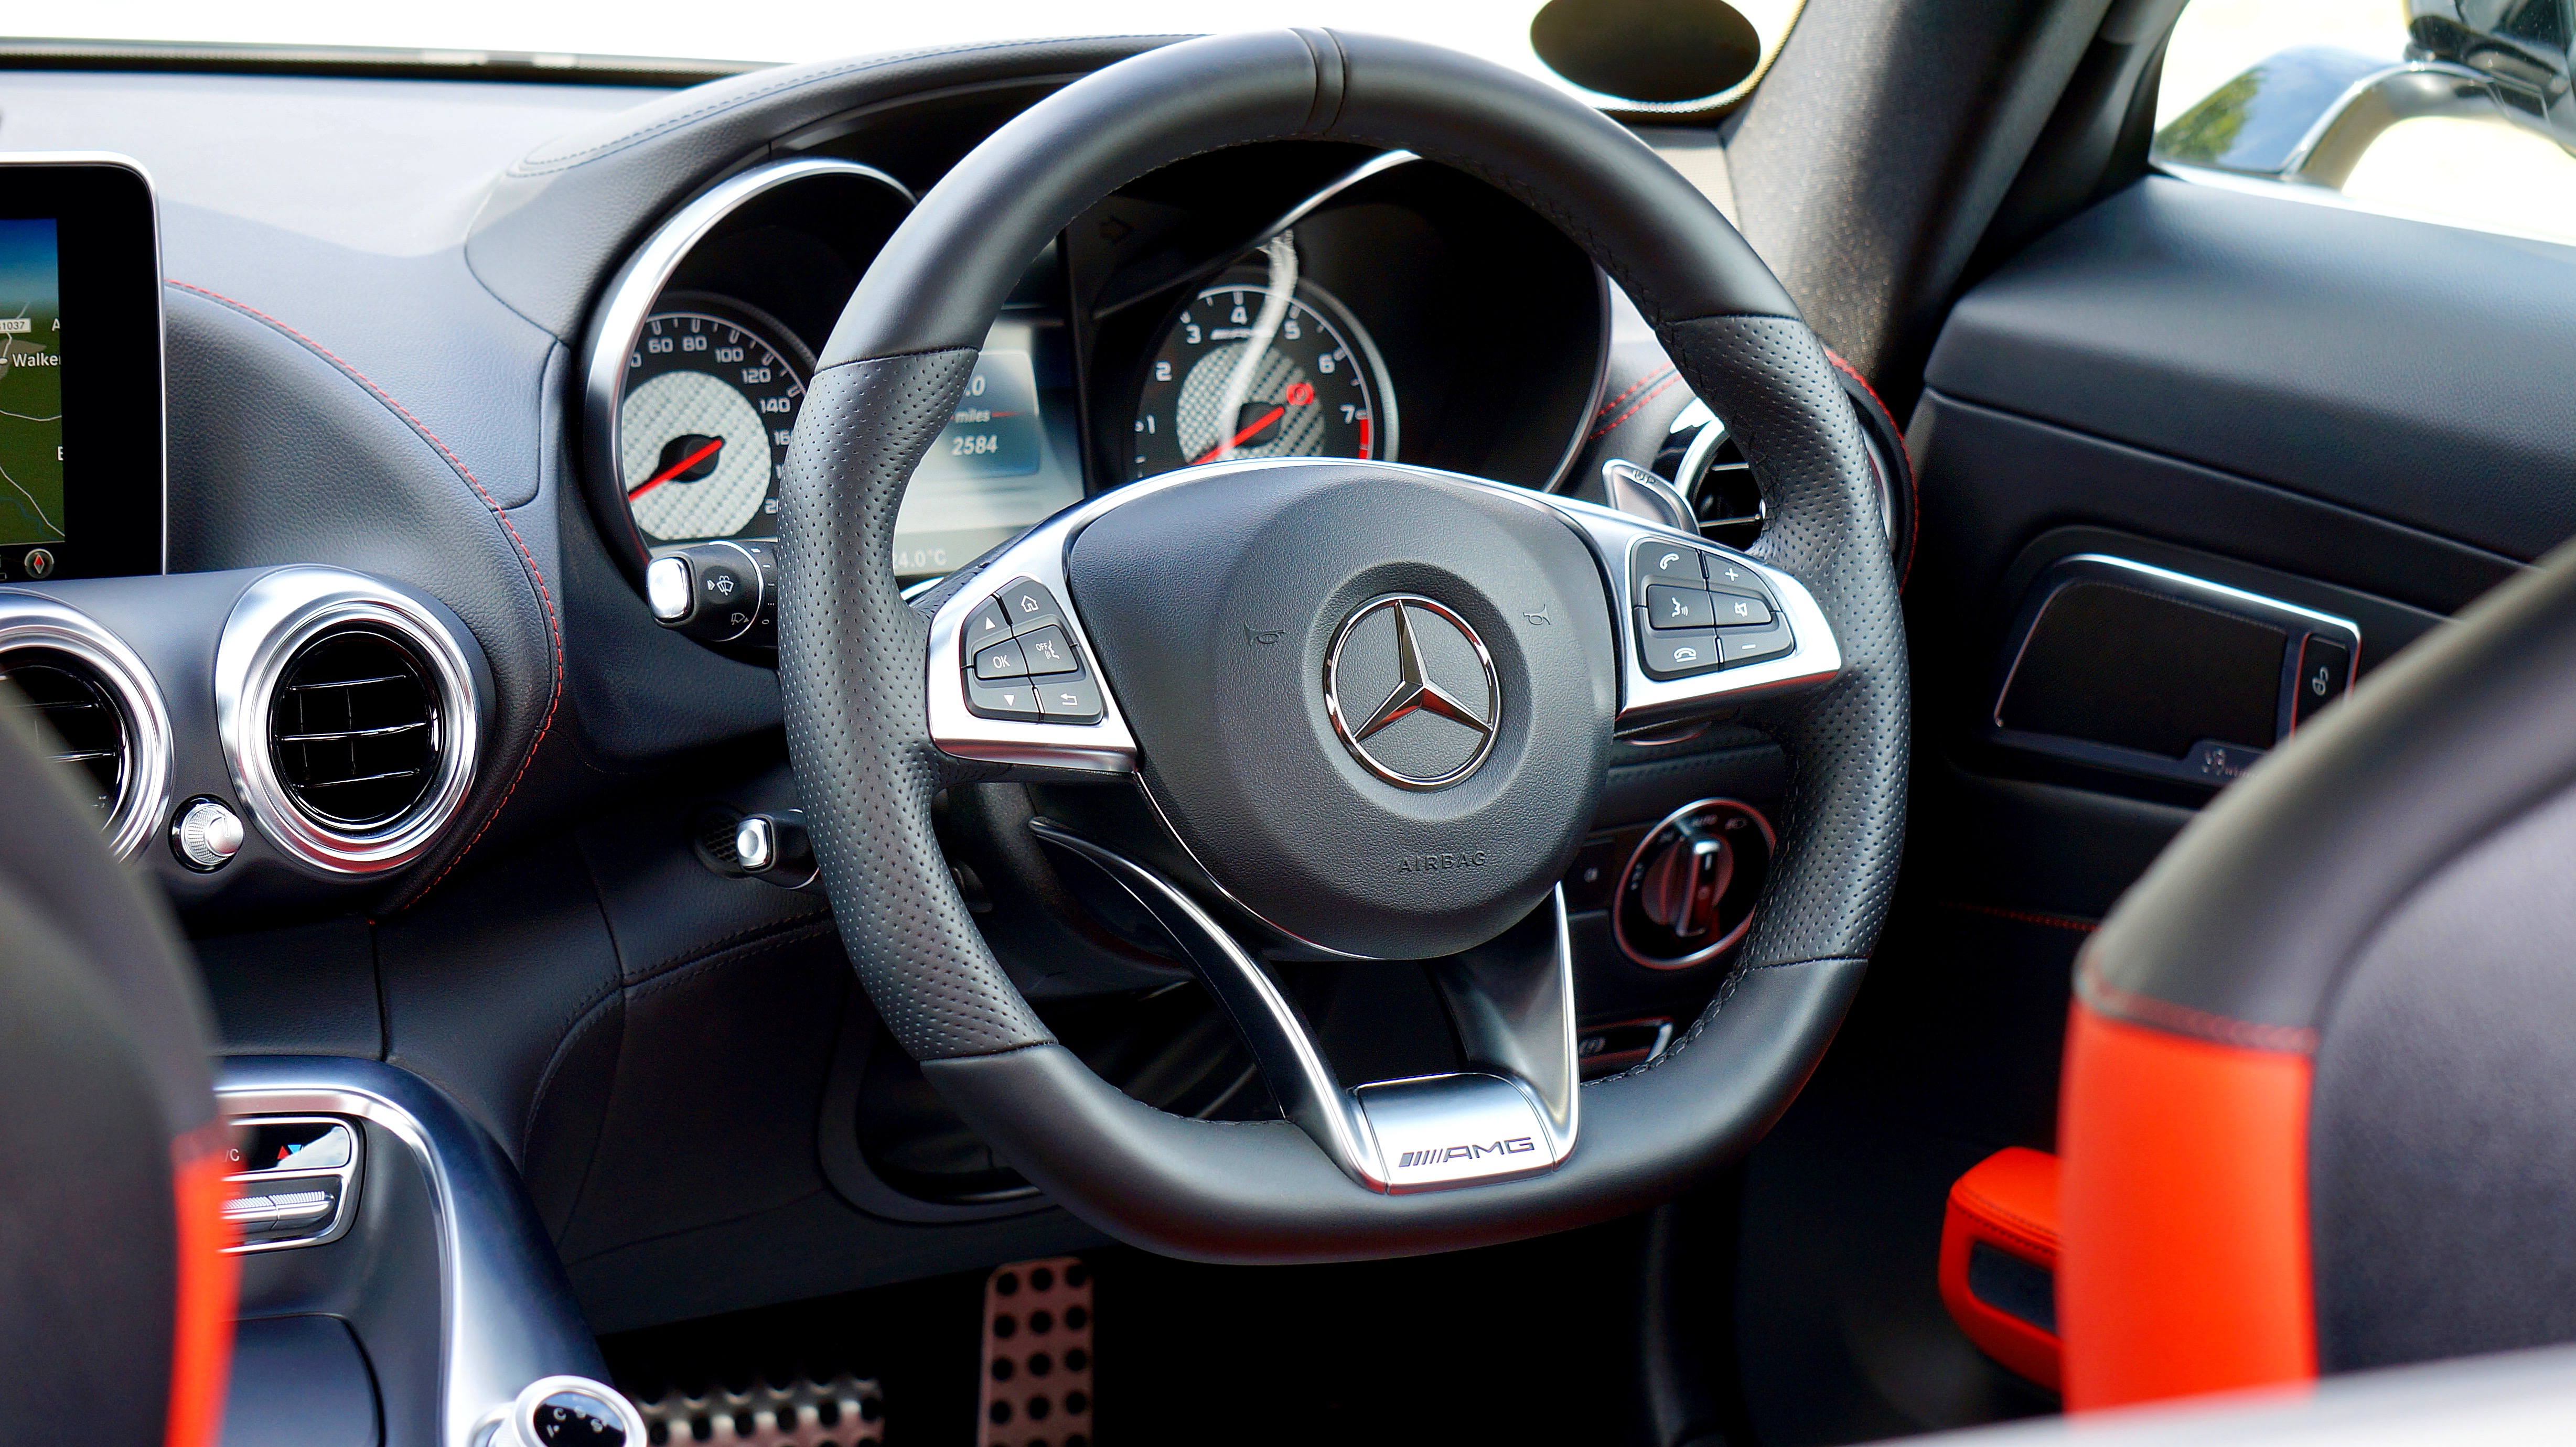 Selective Focus Photography of Mercedes-benz Multi-function Steering Wheel